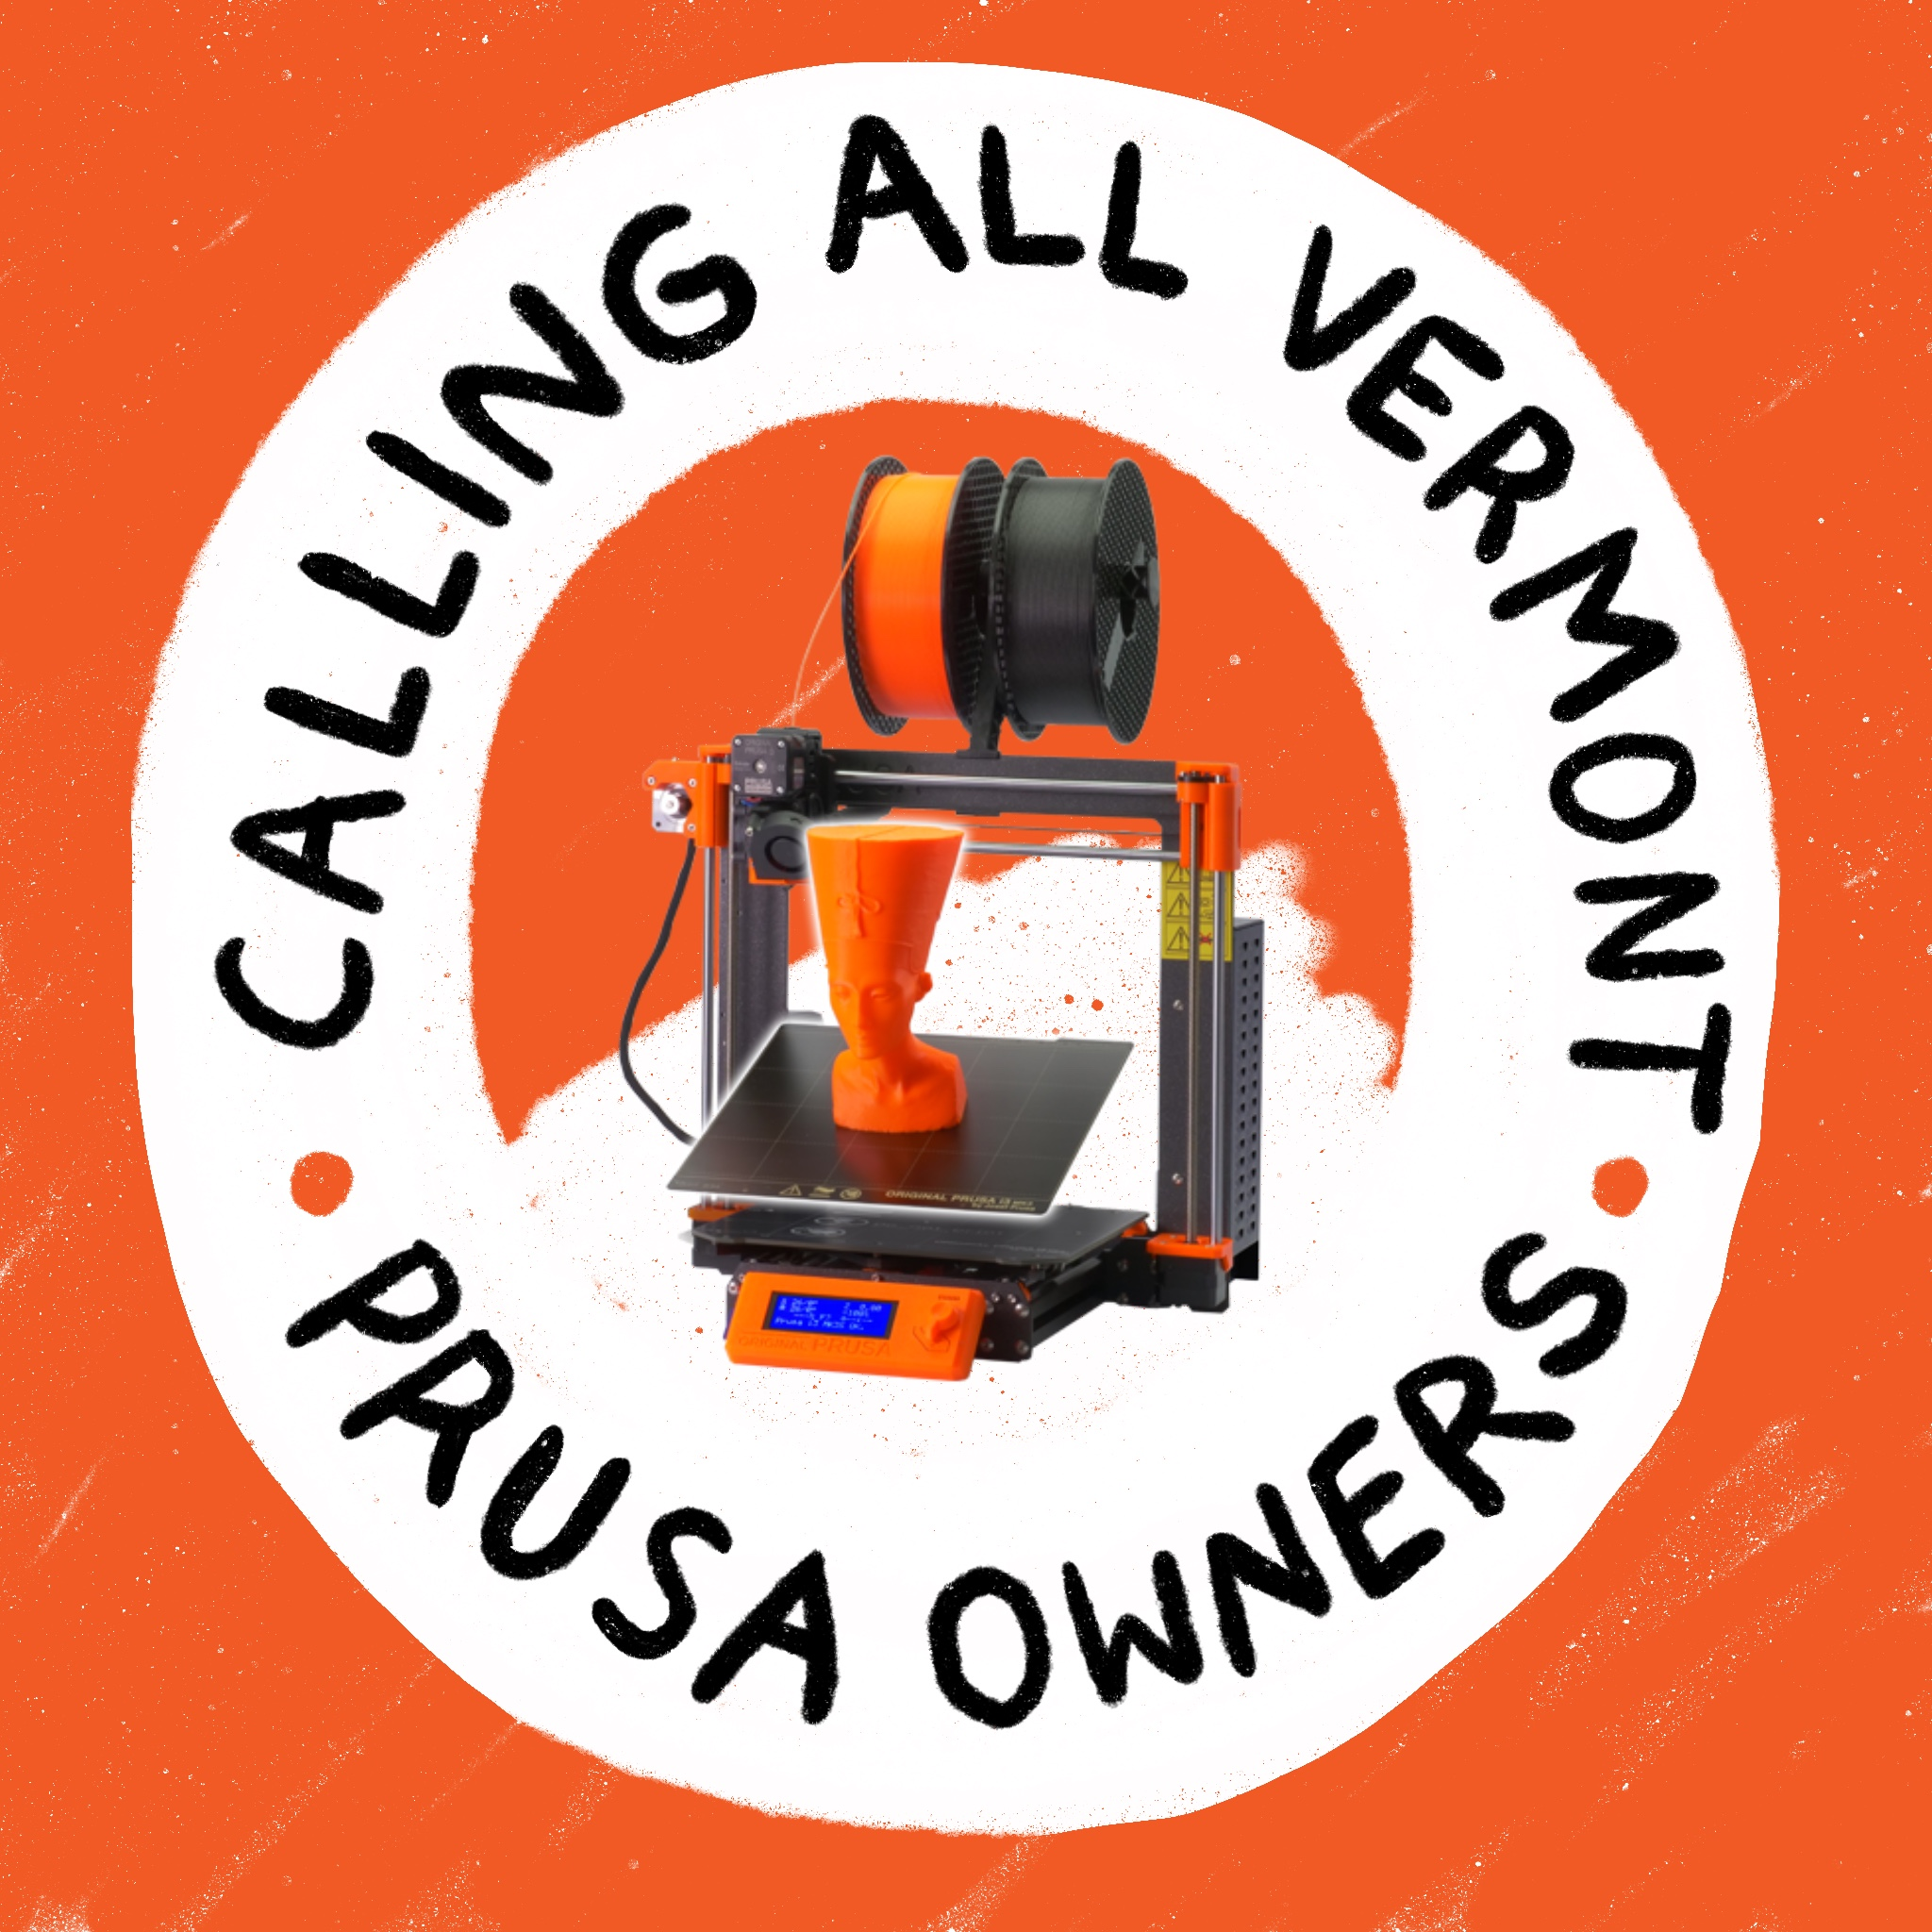 Calling all Vermont Prusa printers! Generator needs your help.